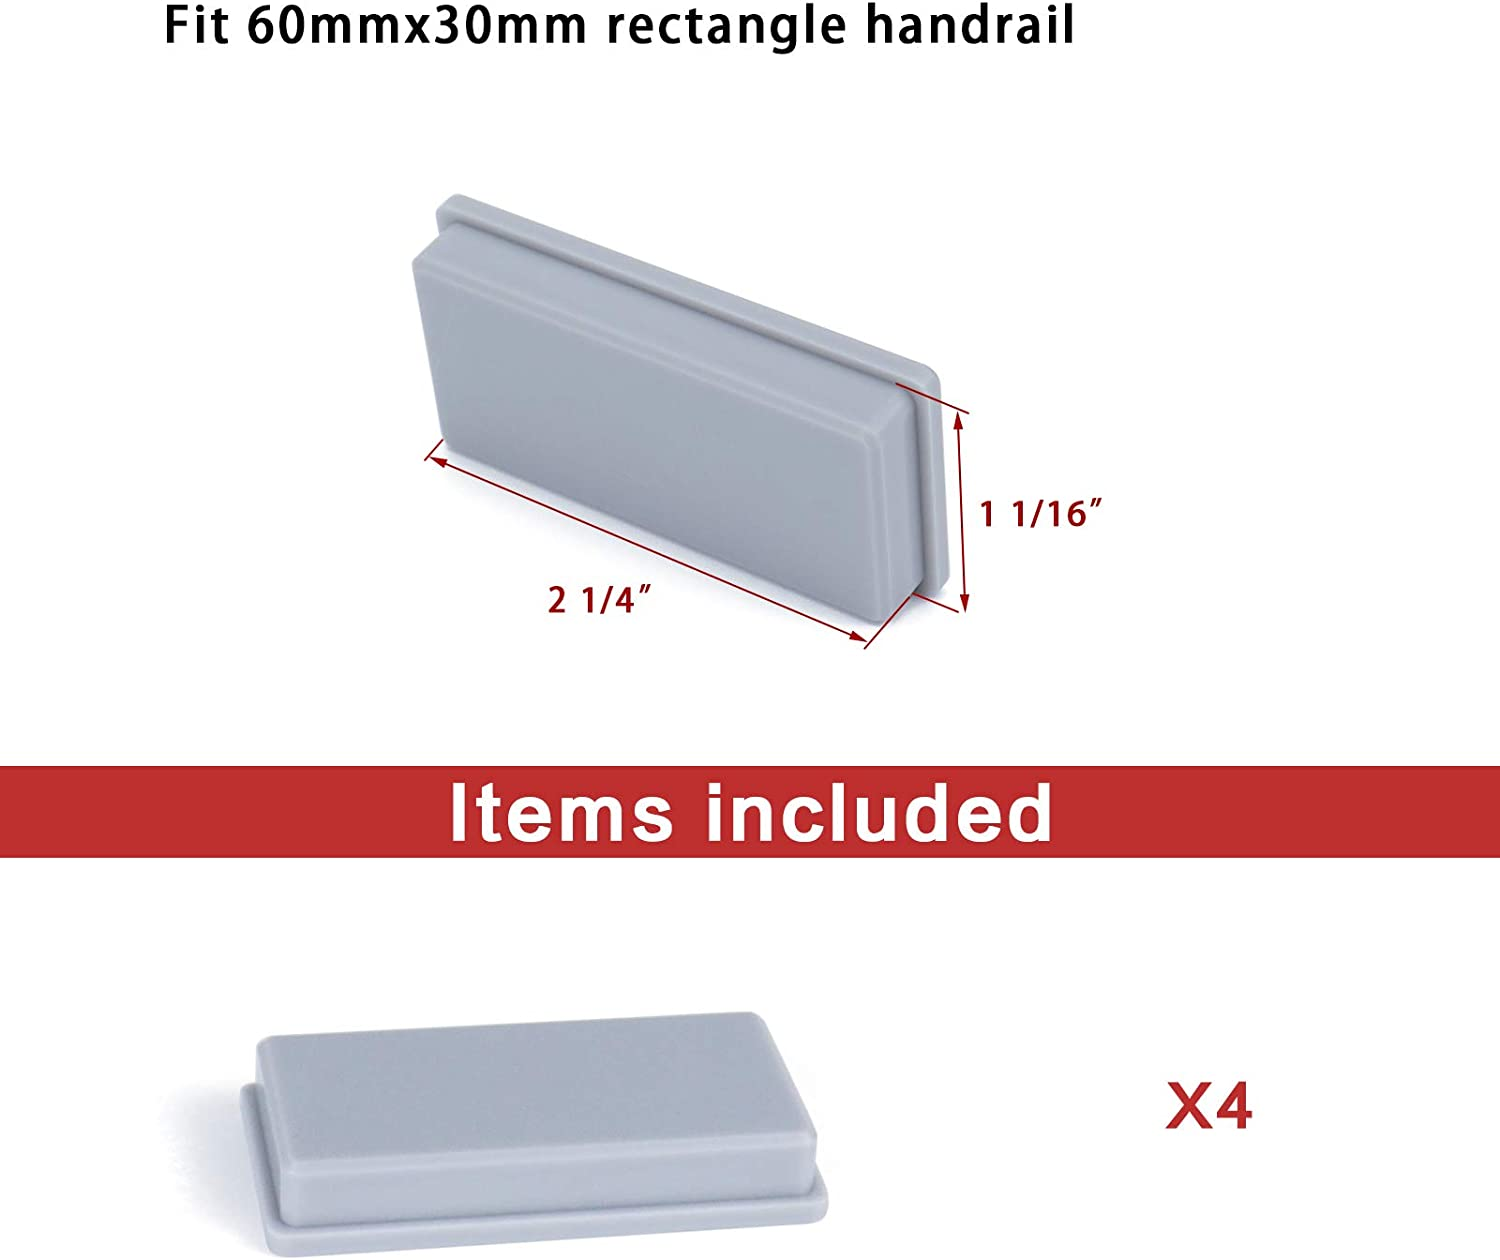 Fit 60x30mm Rectangle Steel Handrail Muzata Deck Stair Railing Handrail Fitting Grey Plastic End Cap Cover for Indoor Outdoor Metal Rectangle Top Rail HA12 PG1 4 Pack